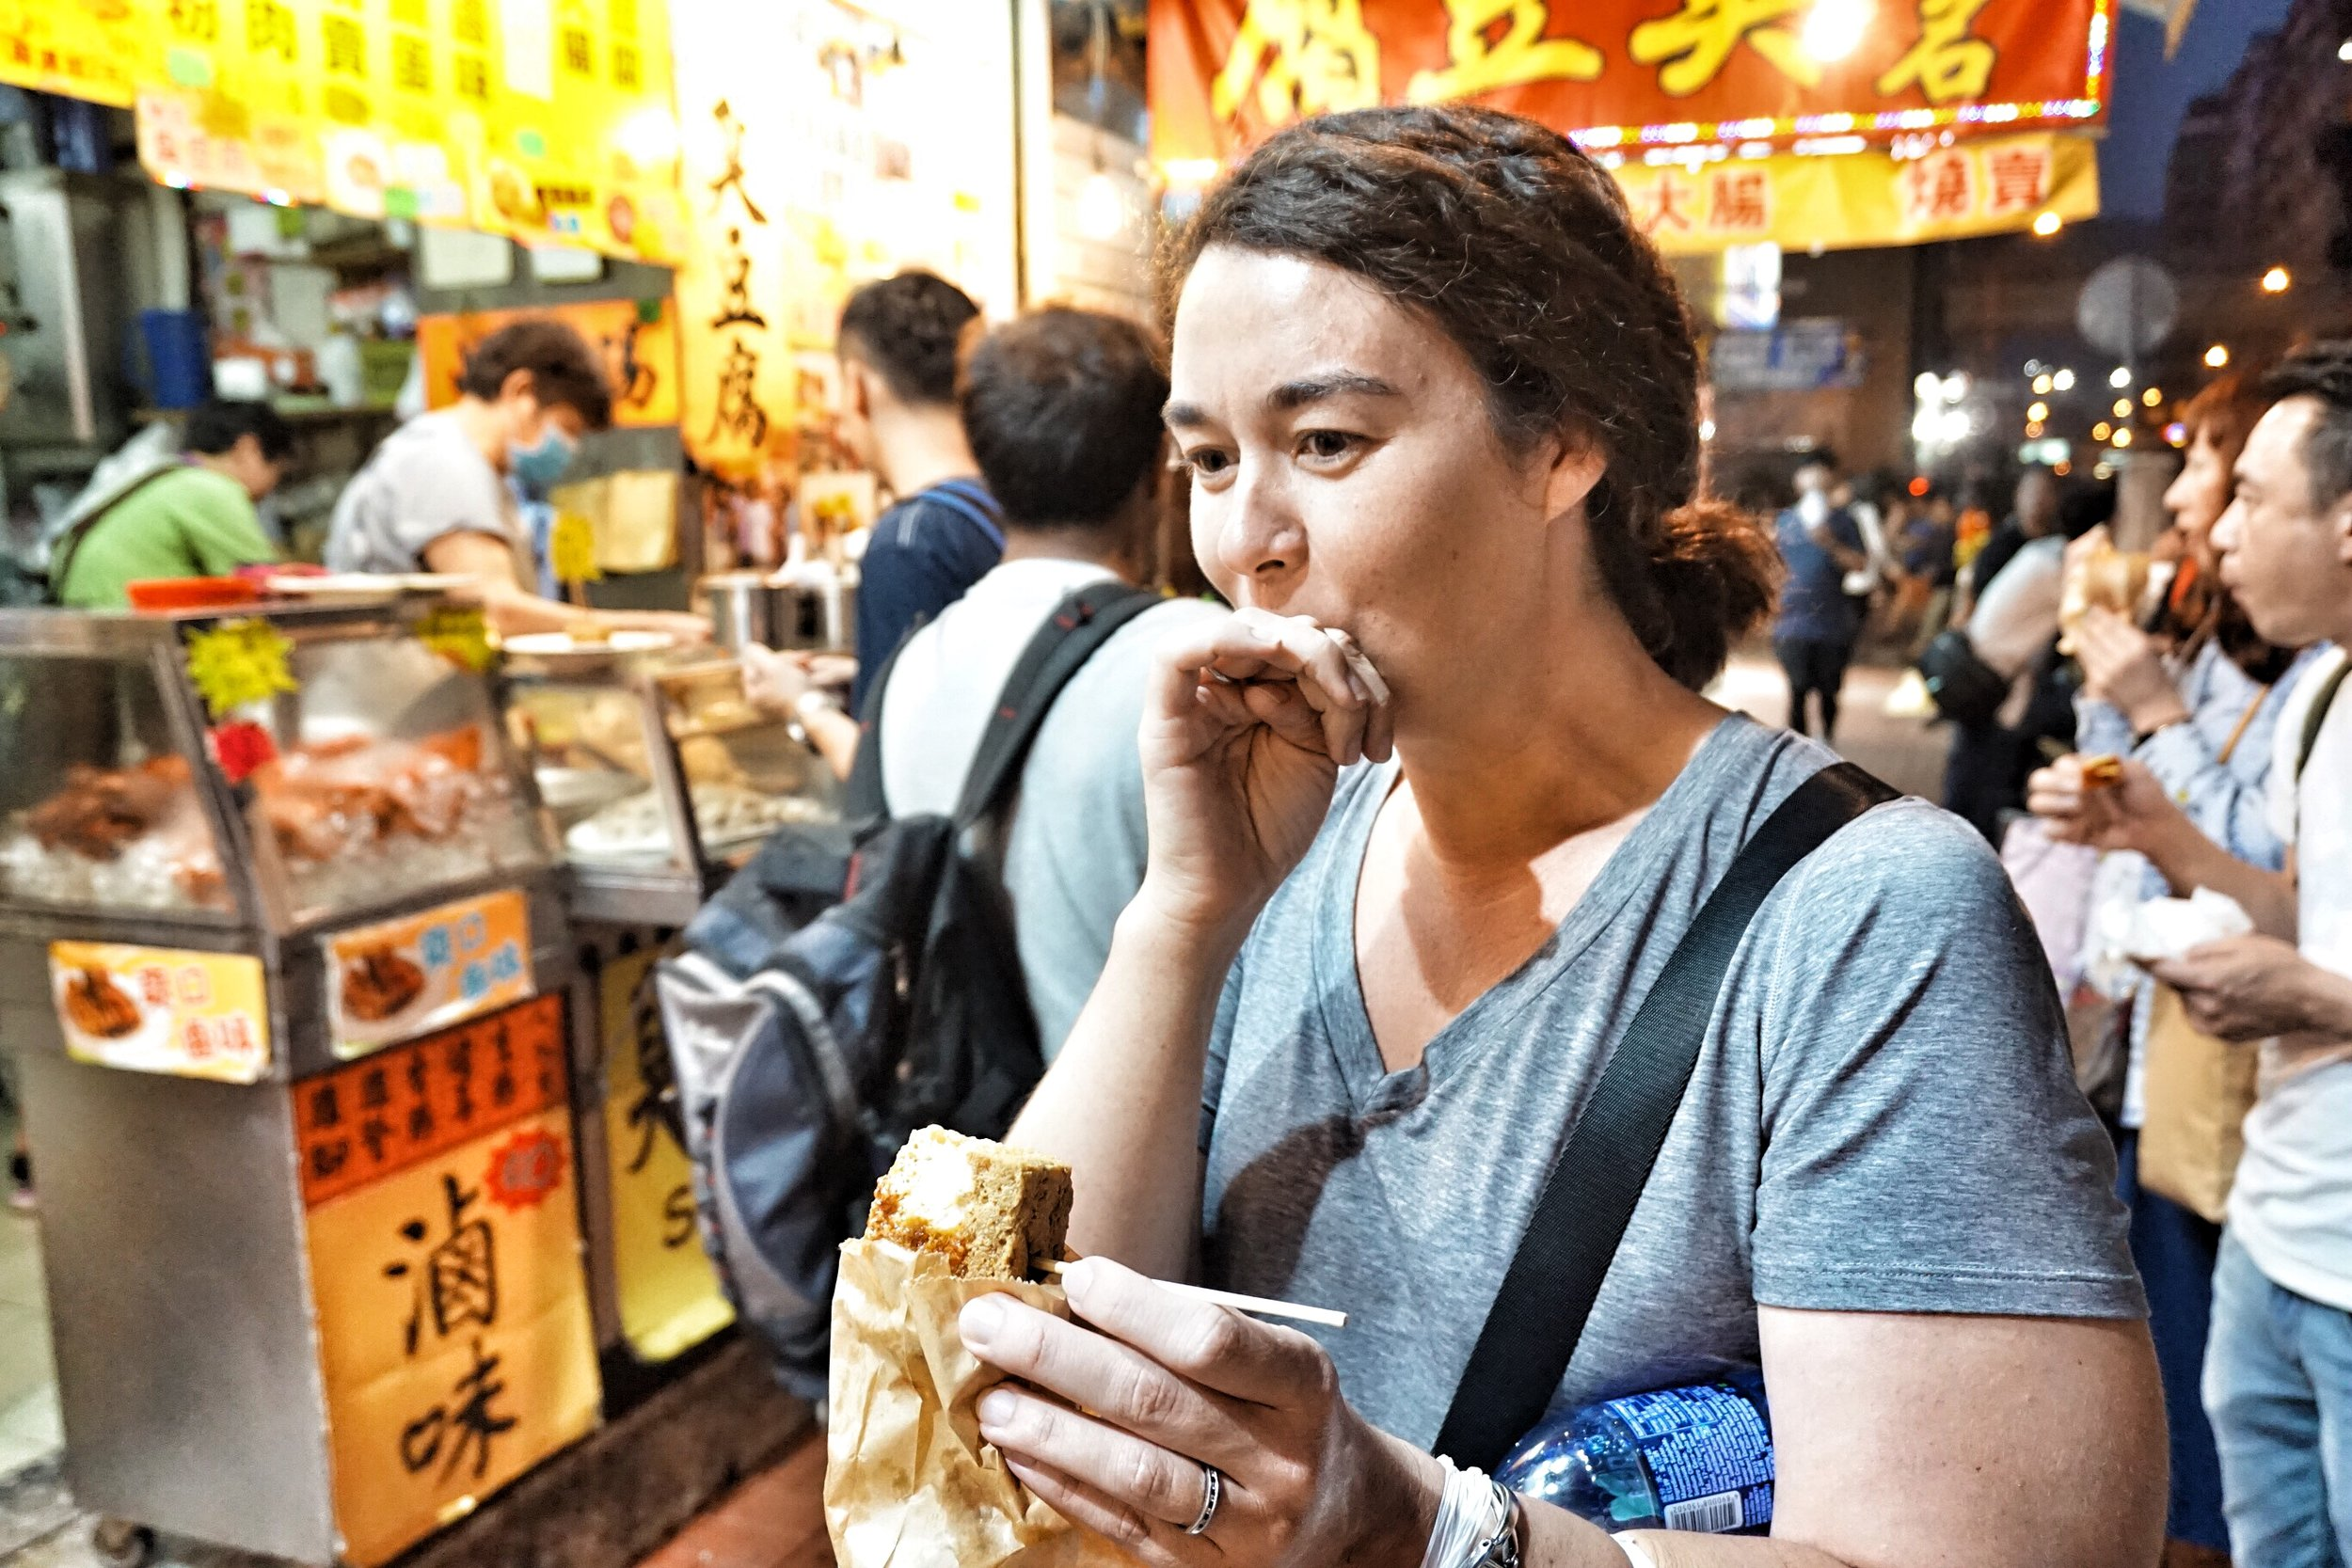 Private tour guide Jess tries the stinky tofu during one of her night tours in Kowloon. The big question is, did she like it!?